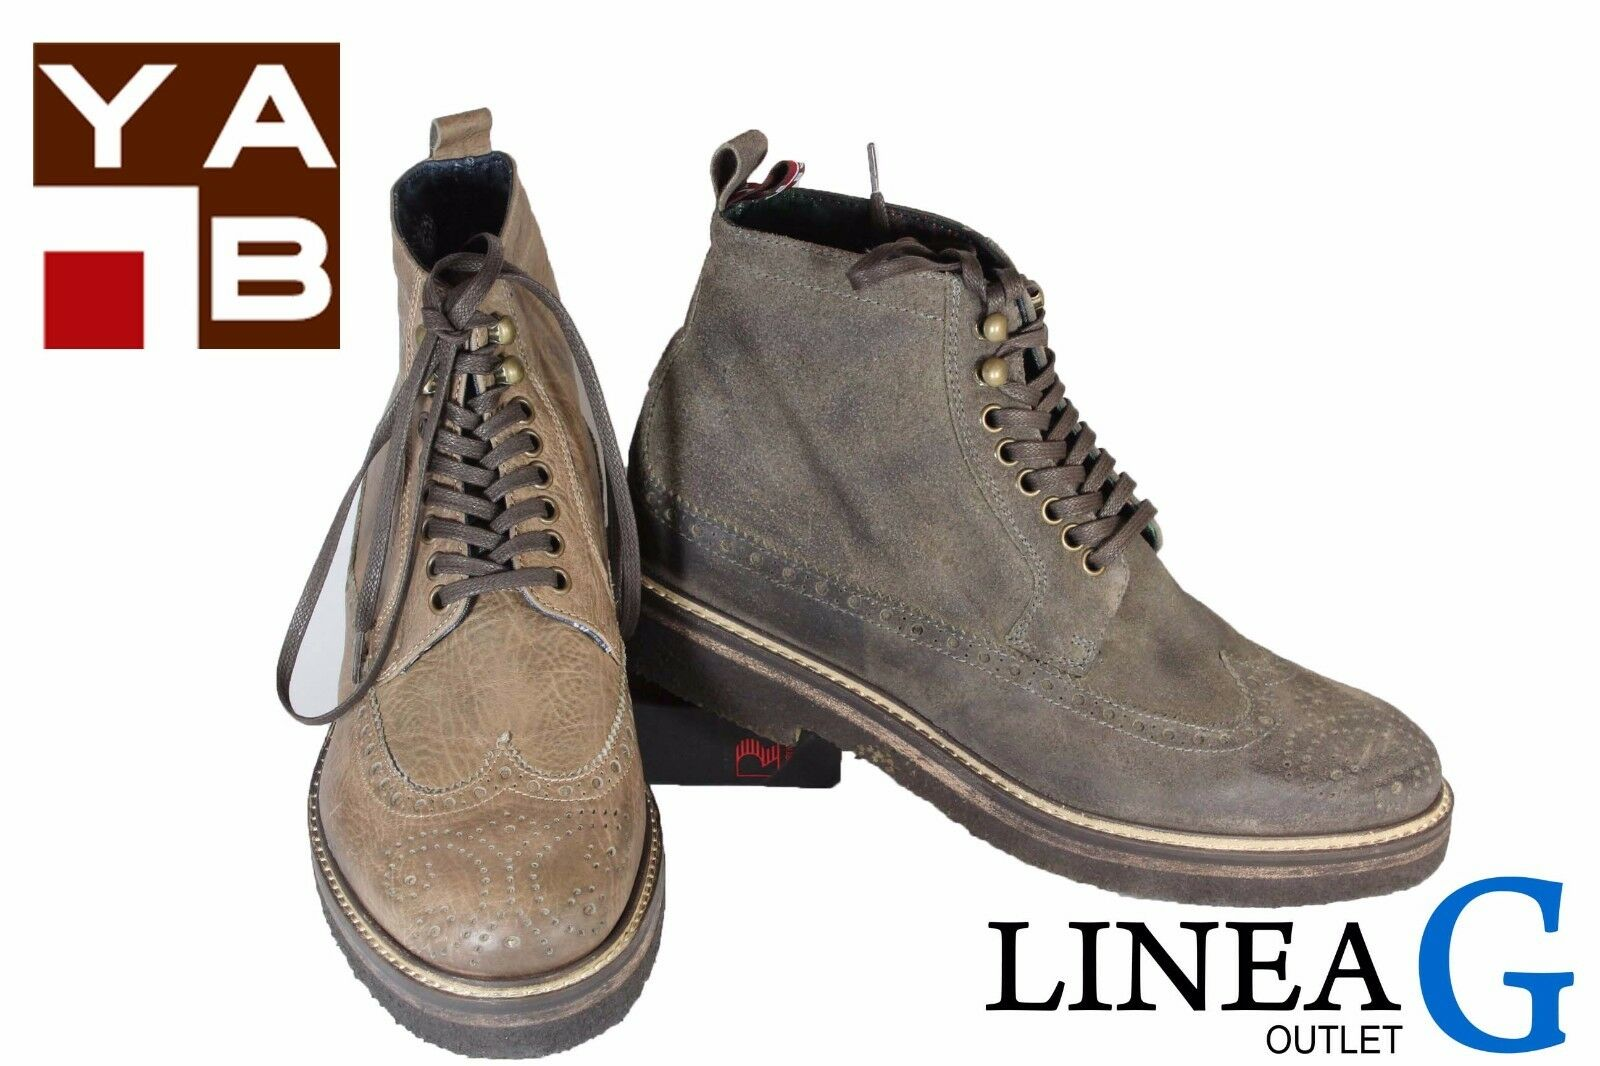 YAB oxford suede boots F/W 2017 scarponcino in camoscio A/I 2017